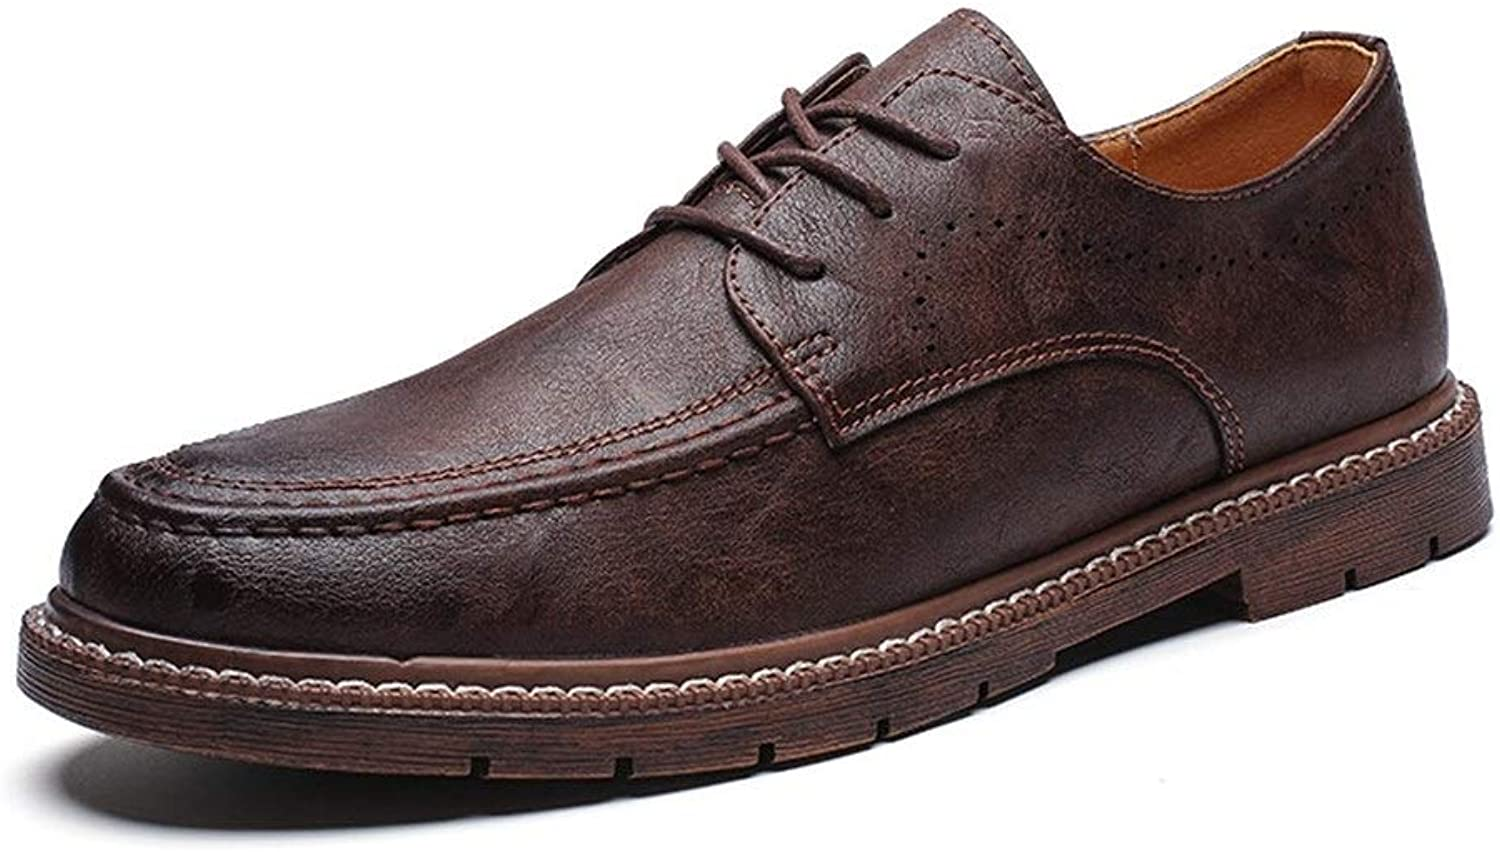 Easy Go Shopping Oxford shoes For Men Formal shoes Lace Up Microfiber Leather Simple Comfortable Round Toe shoes Cricket shoes (color   Brown, Size   8.5 UK)